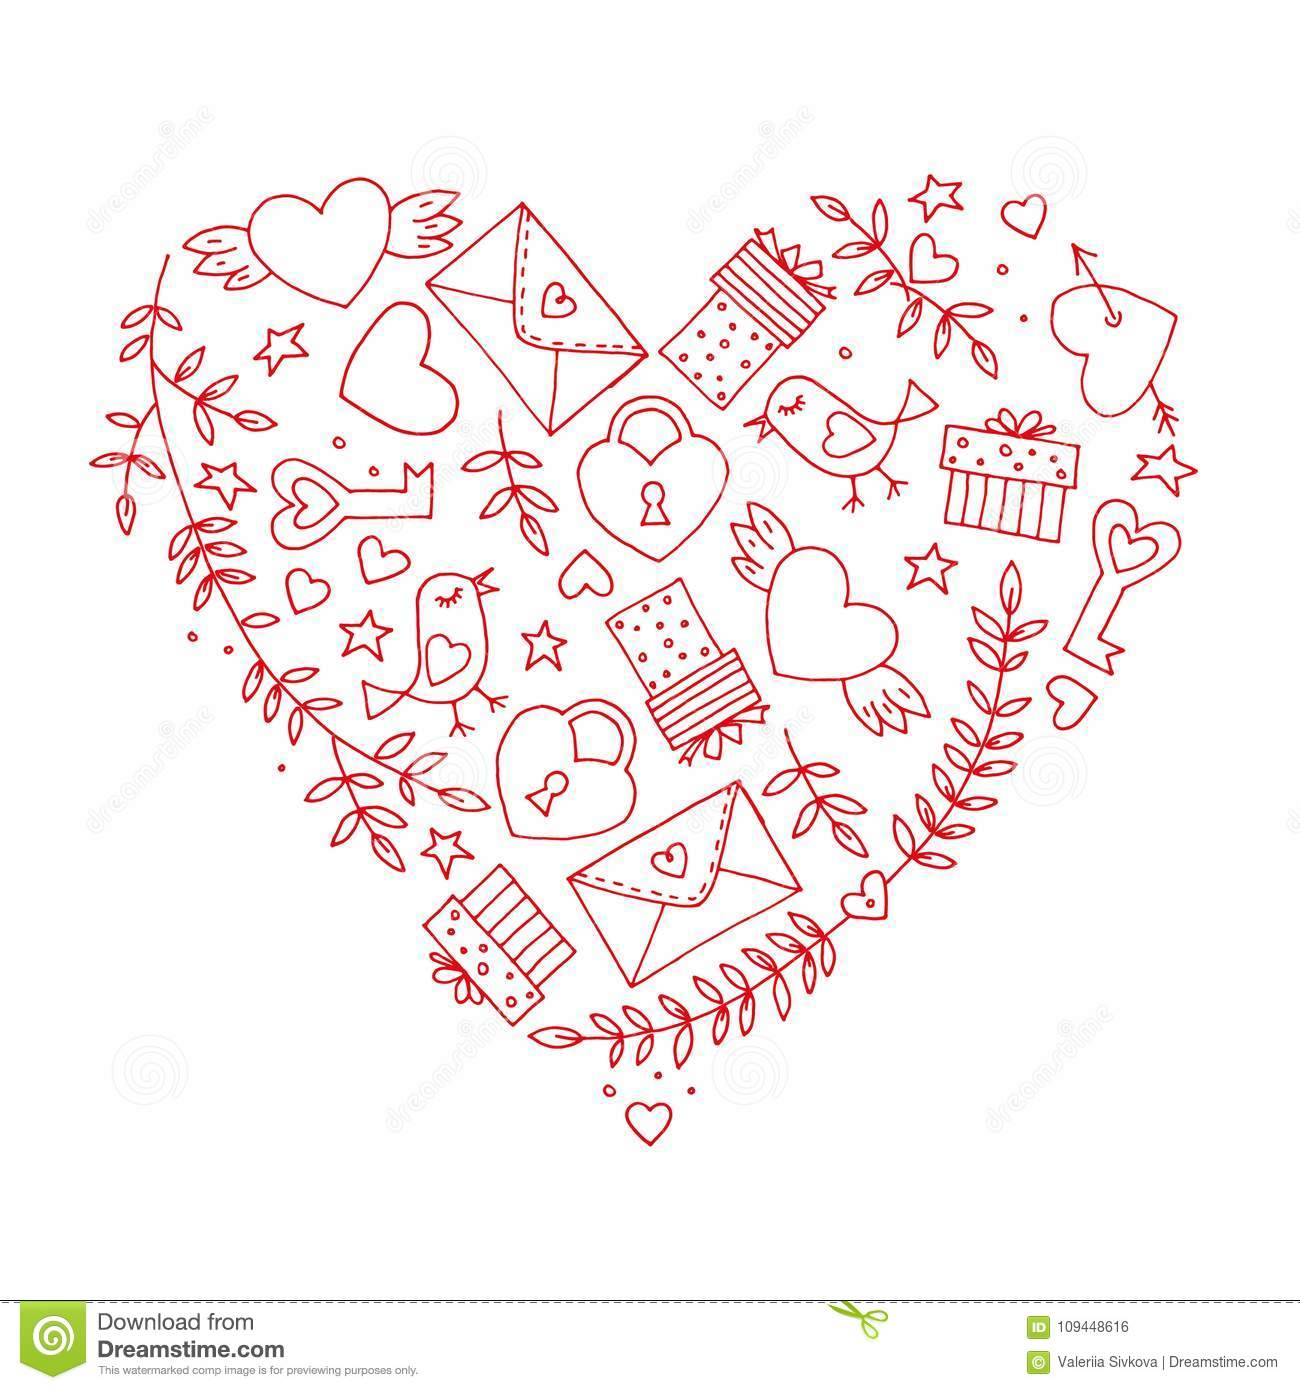 Love decorative vintage elements on white background. Hand drawn collection with heart, wings, branch with leaves, bird